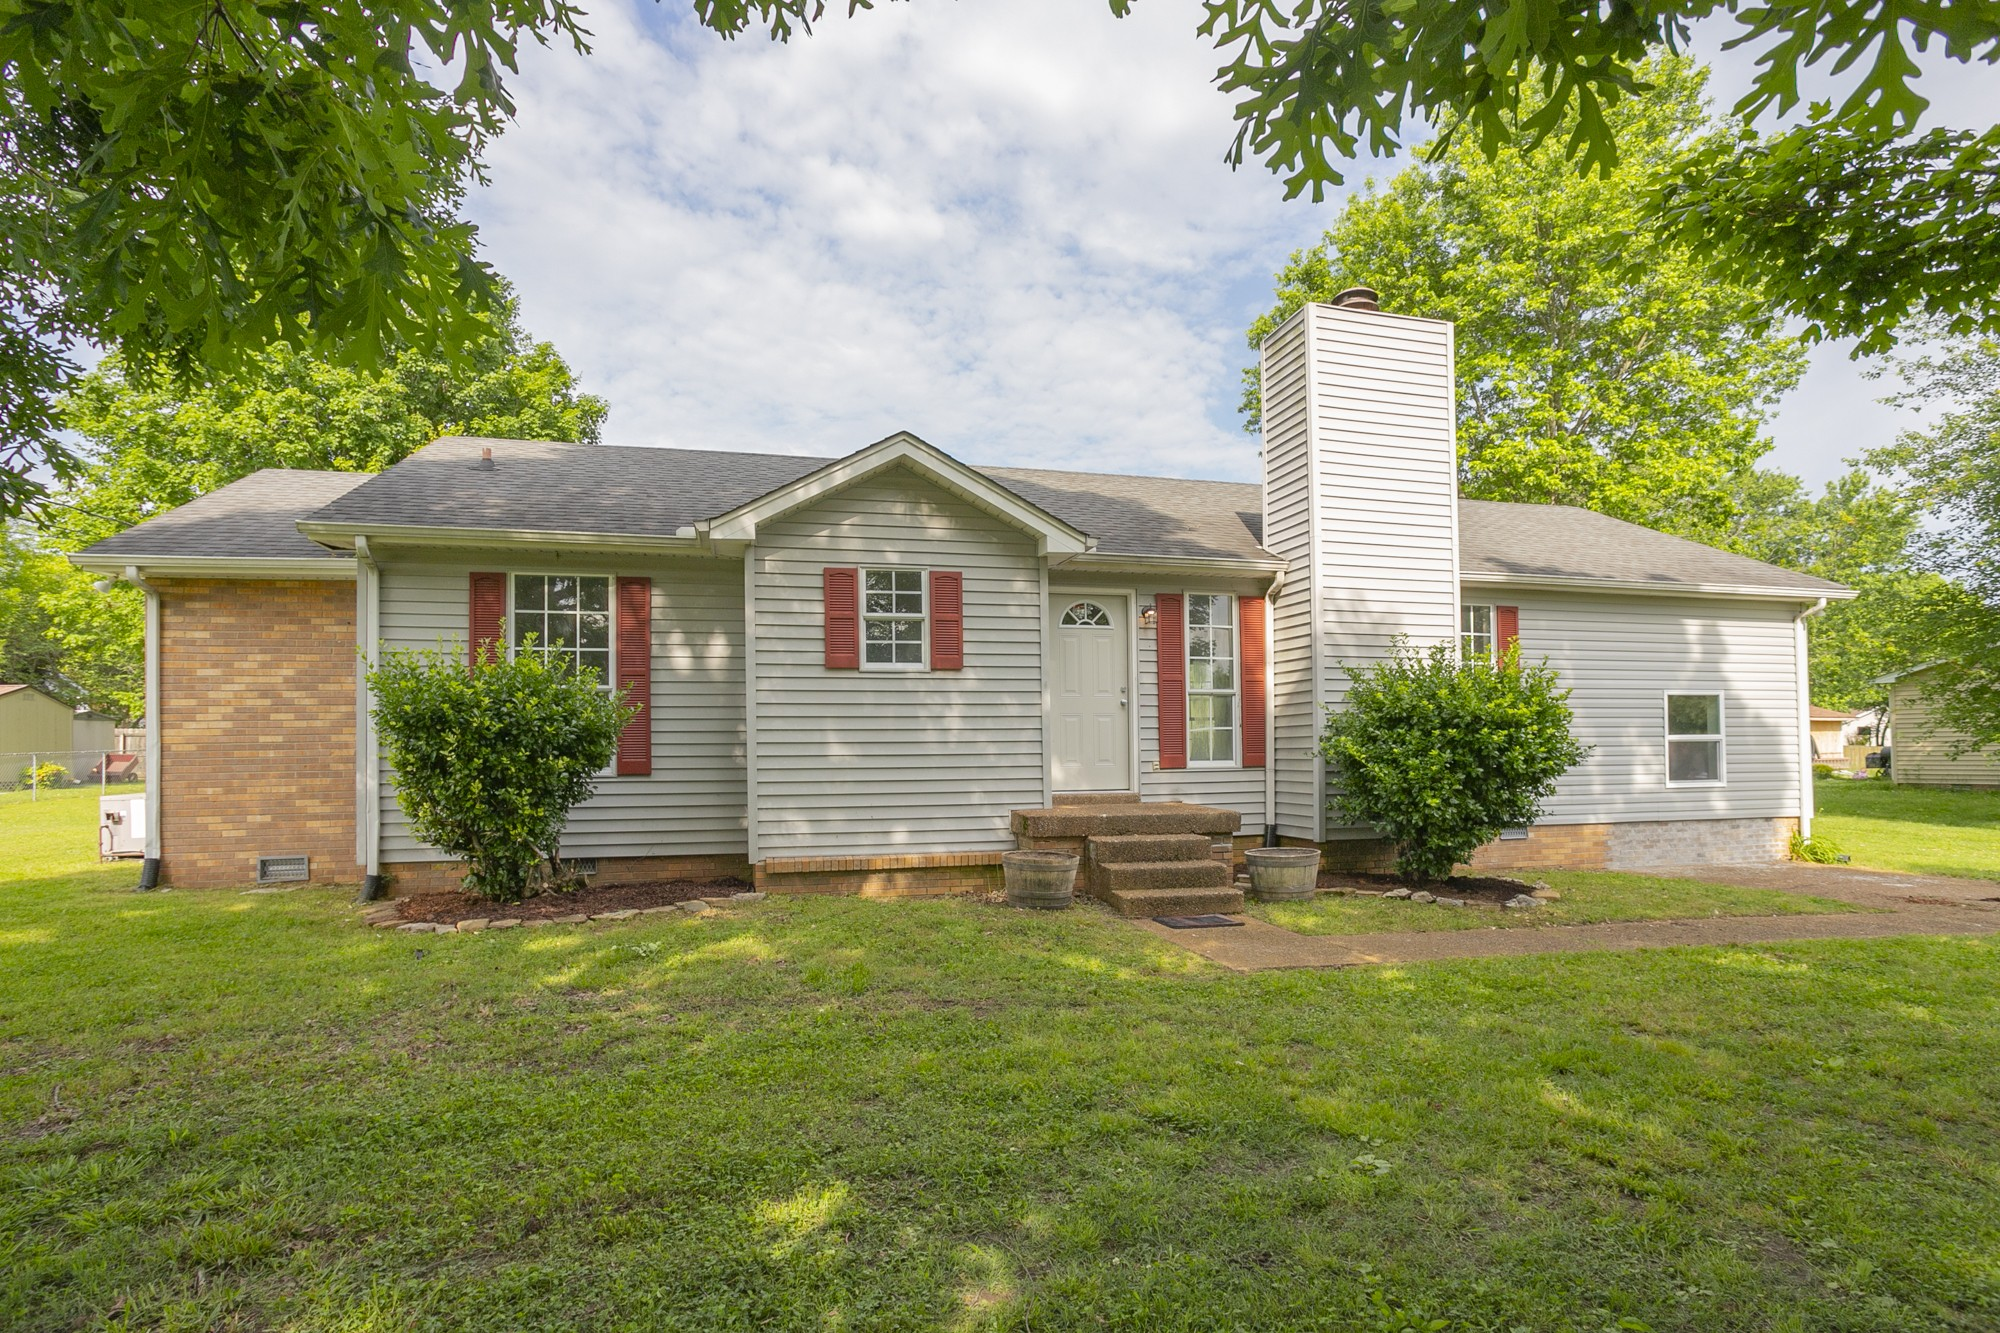 One Level Living at it's Best! Tucked in a well established neighborhood sitting on a spacious, level lot , this renovated 4 bedrooms/2 baths with many updates is move in ready. Schedule your showing today. Will not last!!